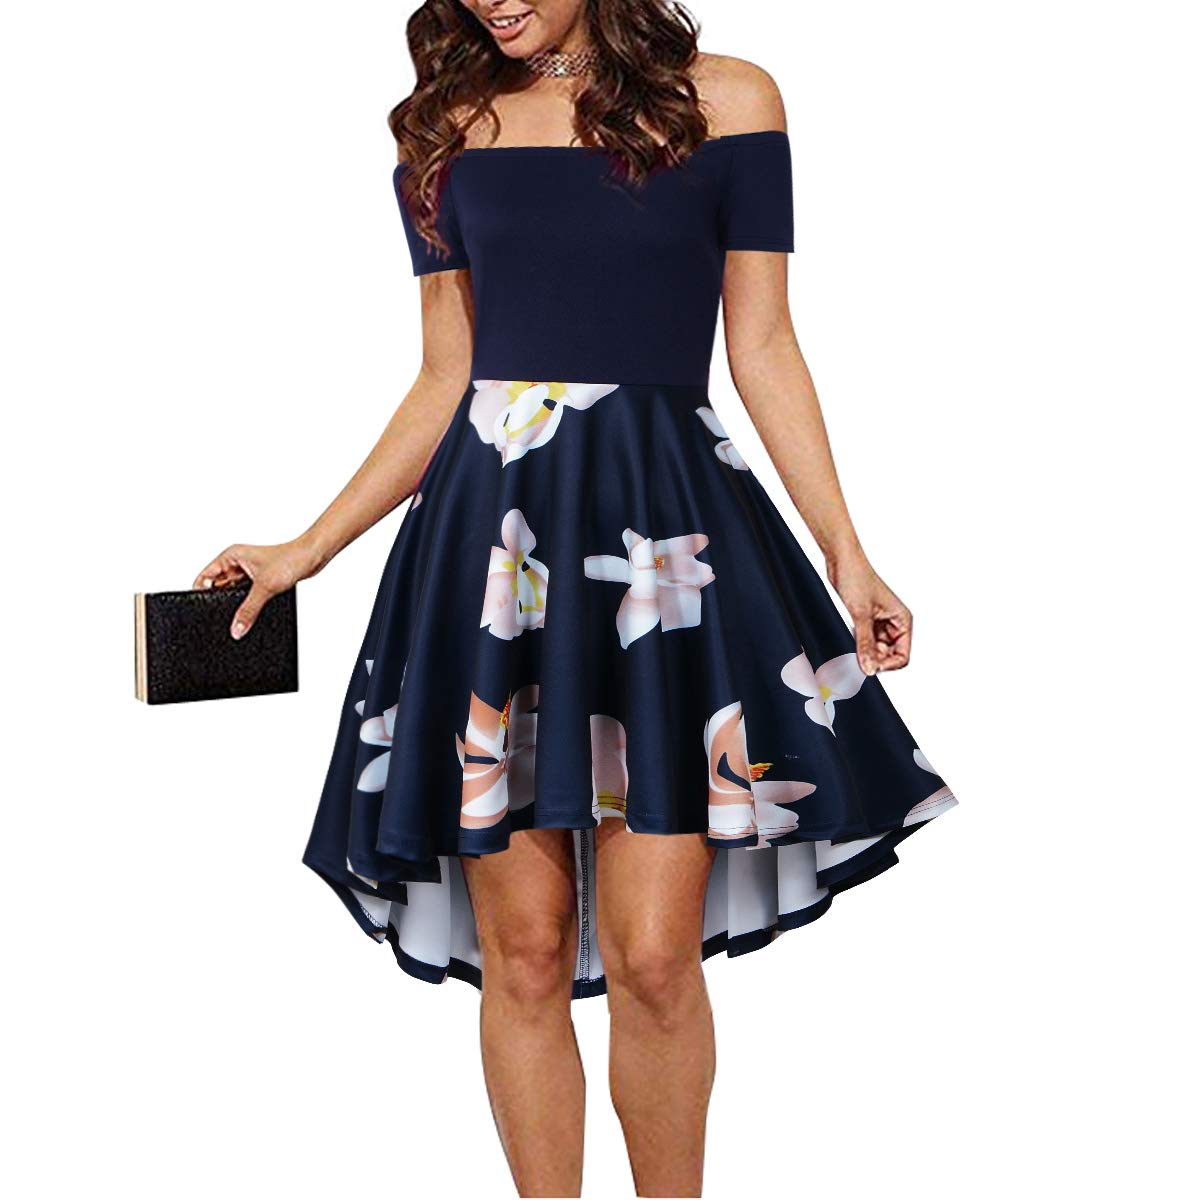 CUQY Teens Elegant Female Graduation Dress Formal Homecoming Dresses for Womens(Navy, M) ... by CUQY